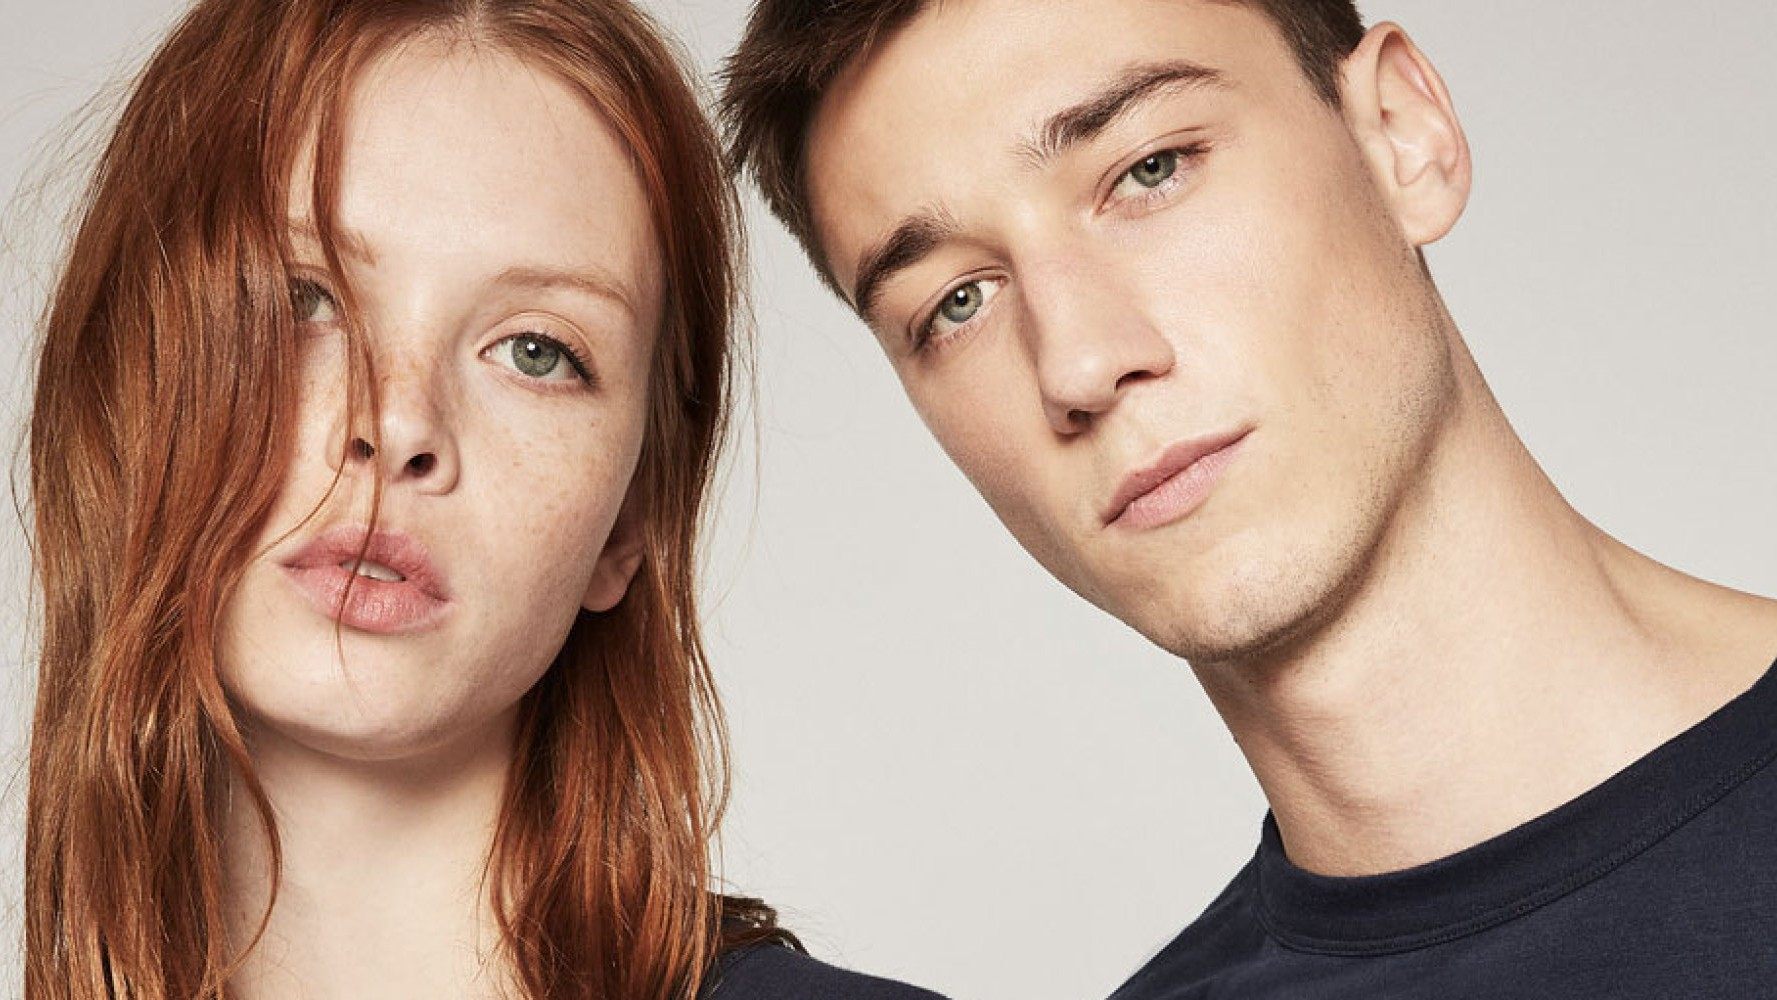 what can fashion learn from zara's 'ungendered' backlash?